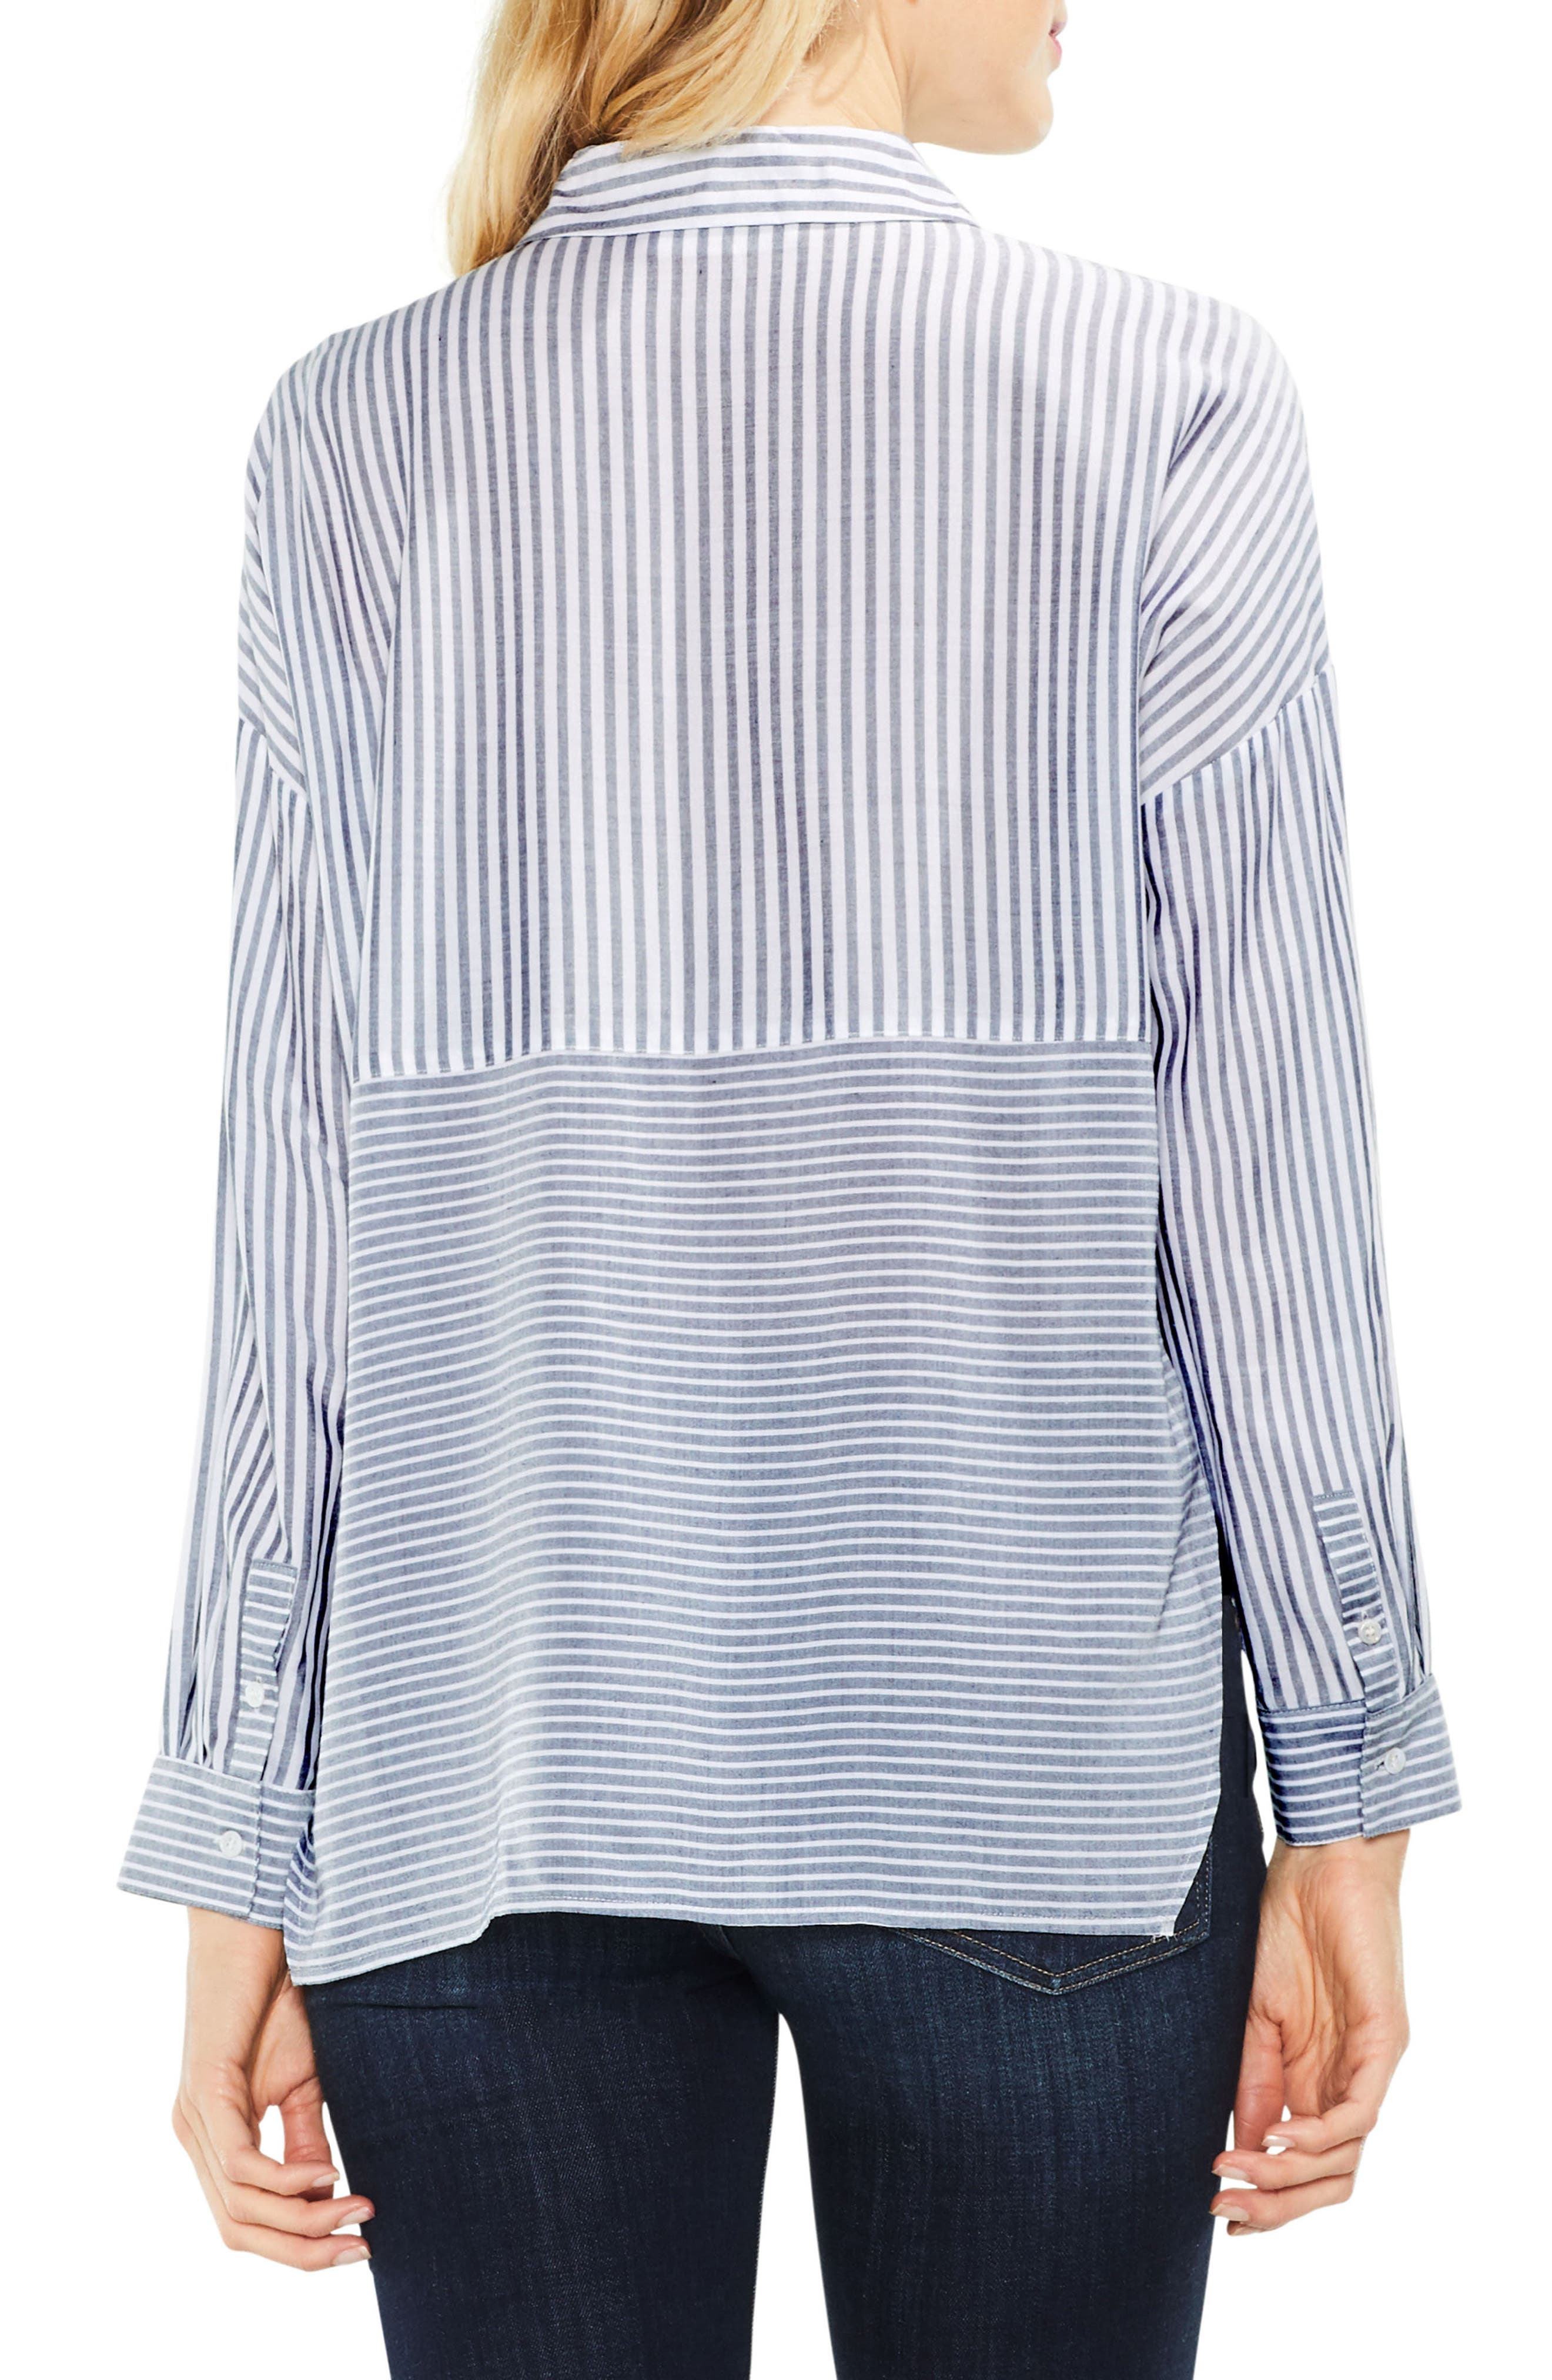 Two by Vince Camuto Mix Stripe Button Down Shirt,                             Alternate thumbnail 2, color,                             430